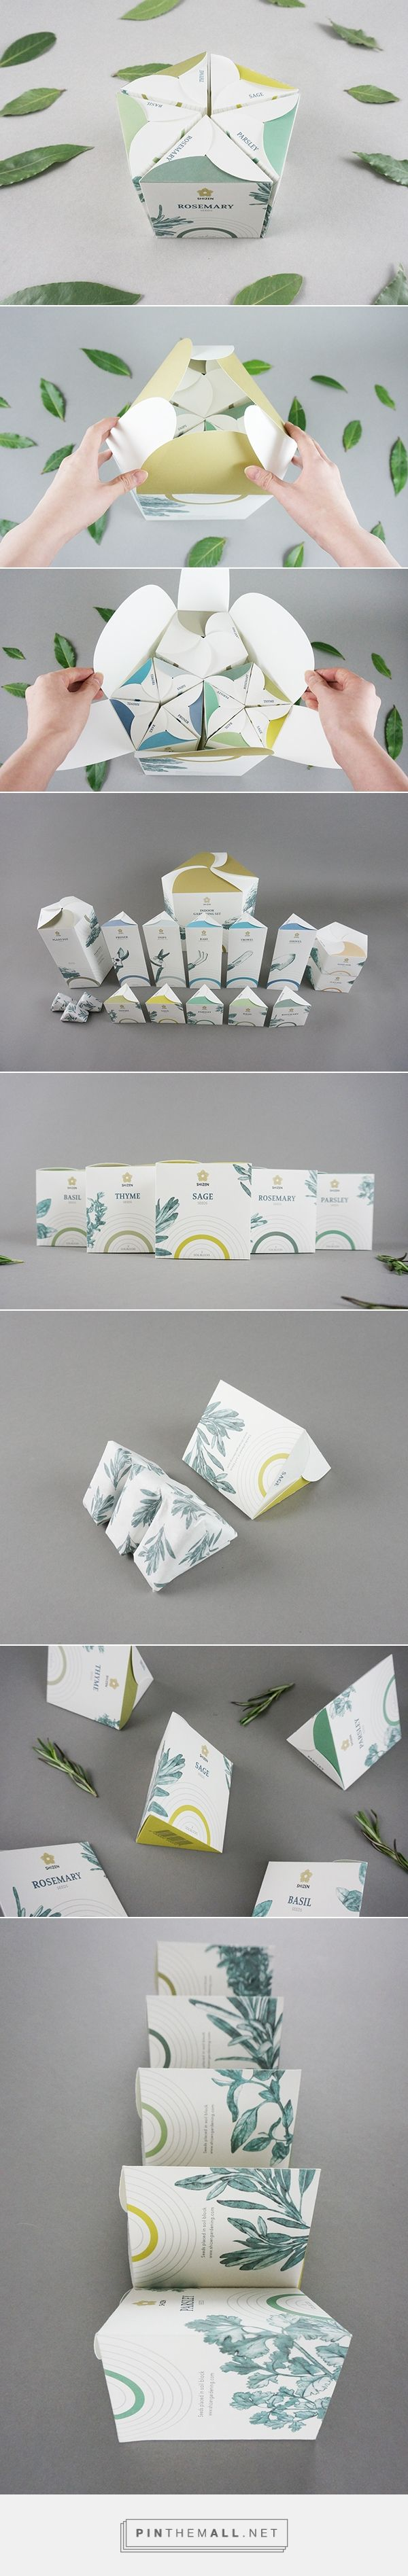 SHIZEN Indoor gardening tools and seeds set packaging by In-young Bae. Pin curated by #SFields99 #packaging #design